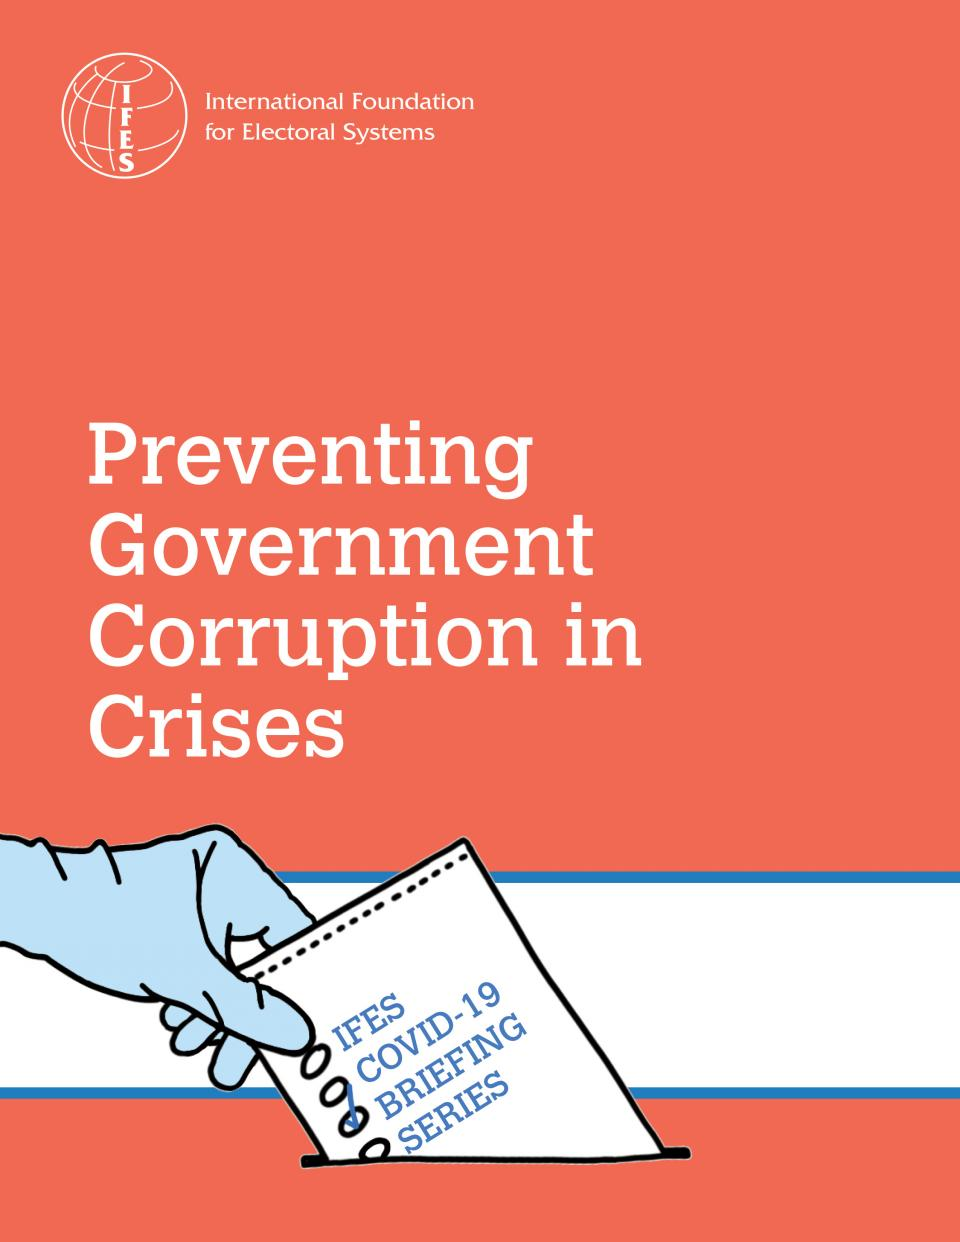 IFES COVID19 Briefing Series_Preventing Government Corruption in Crisis